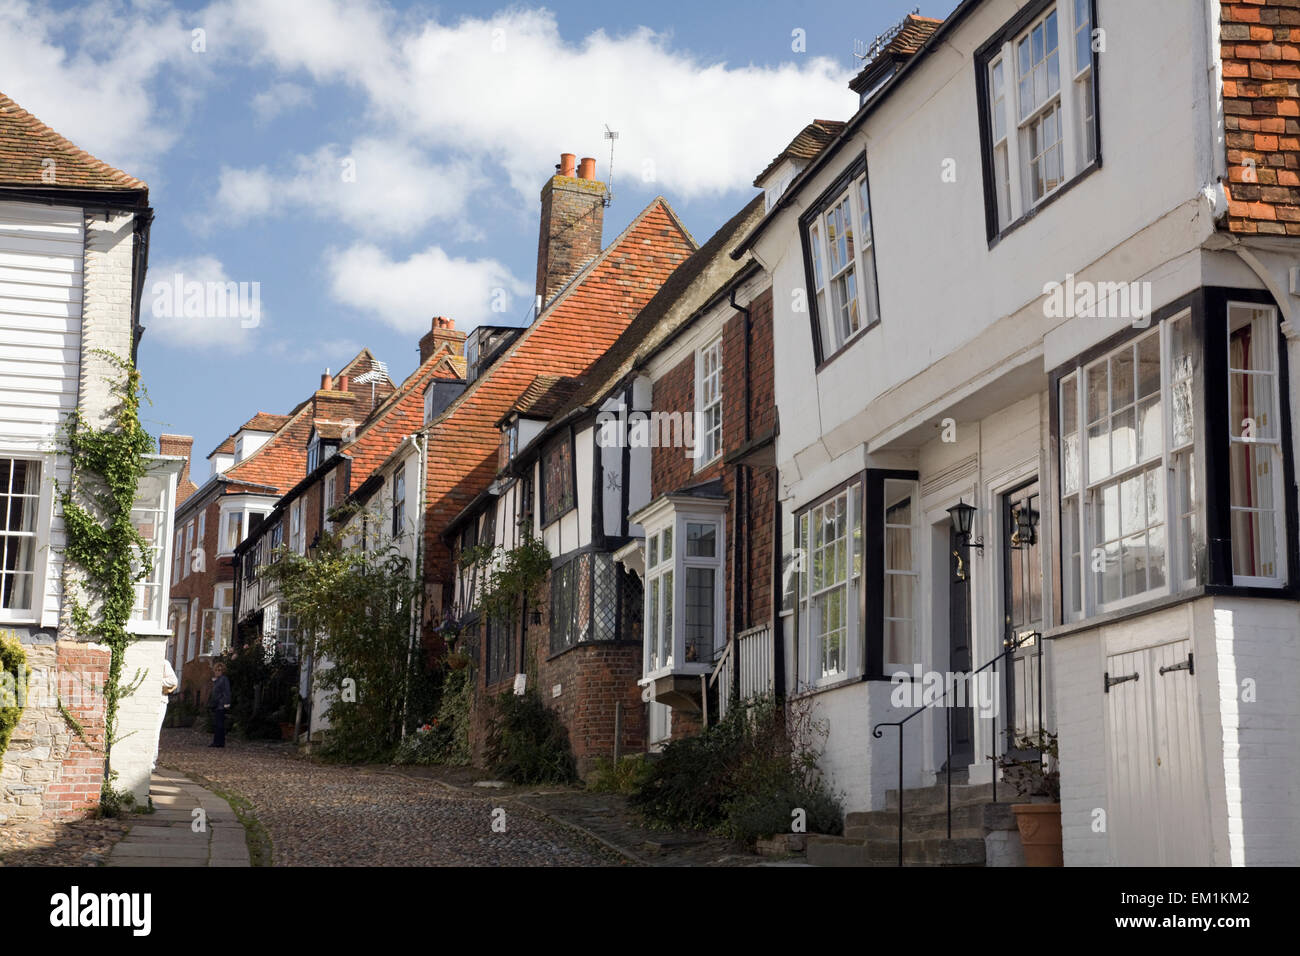 rye sussex tudor houses stock photos rye sussex tudor houses tudor style houses on a cobbled street rye sussex england stock image